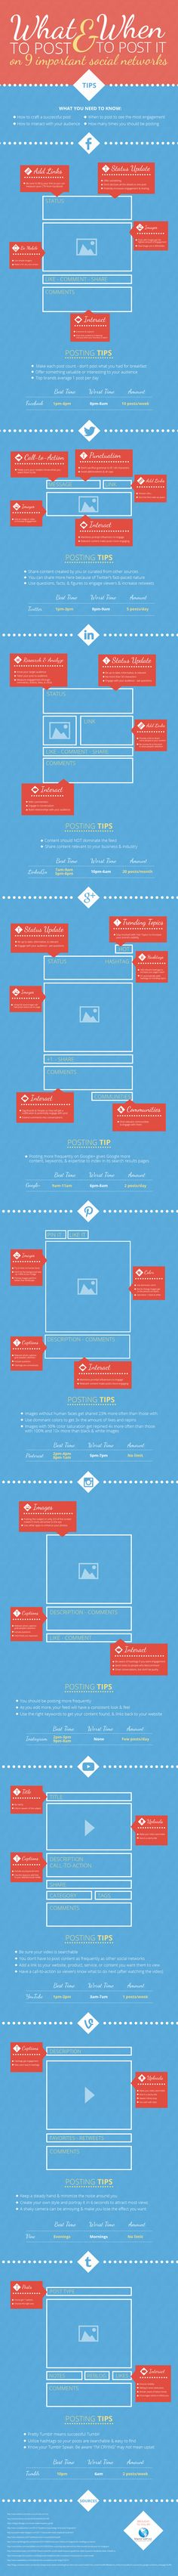 What to Post & When to Post it on 9 Social Networks [Infographic] #socialmedia